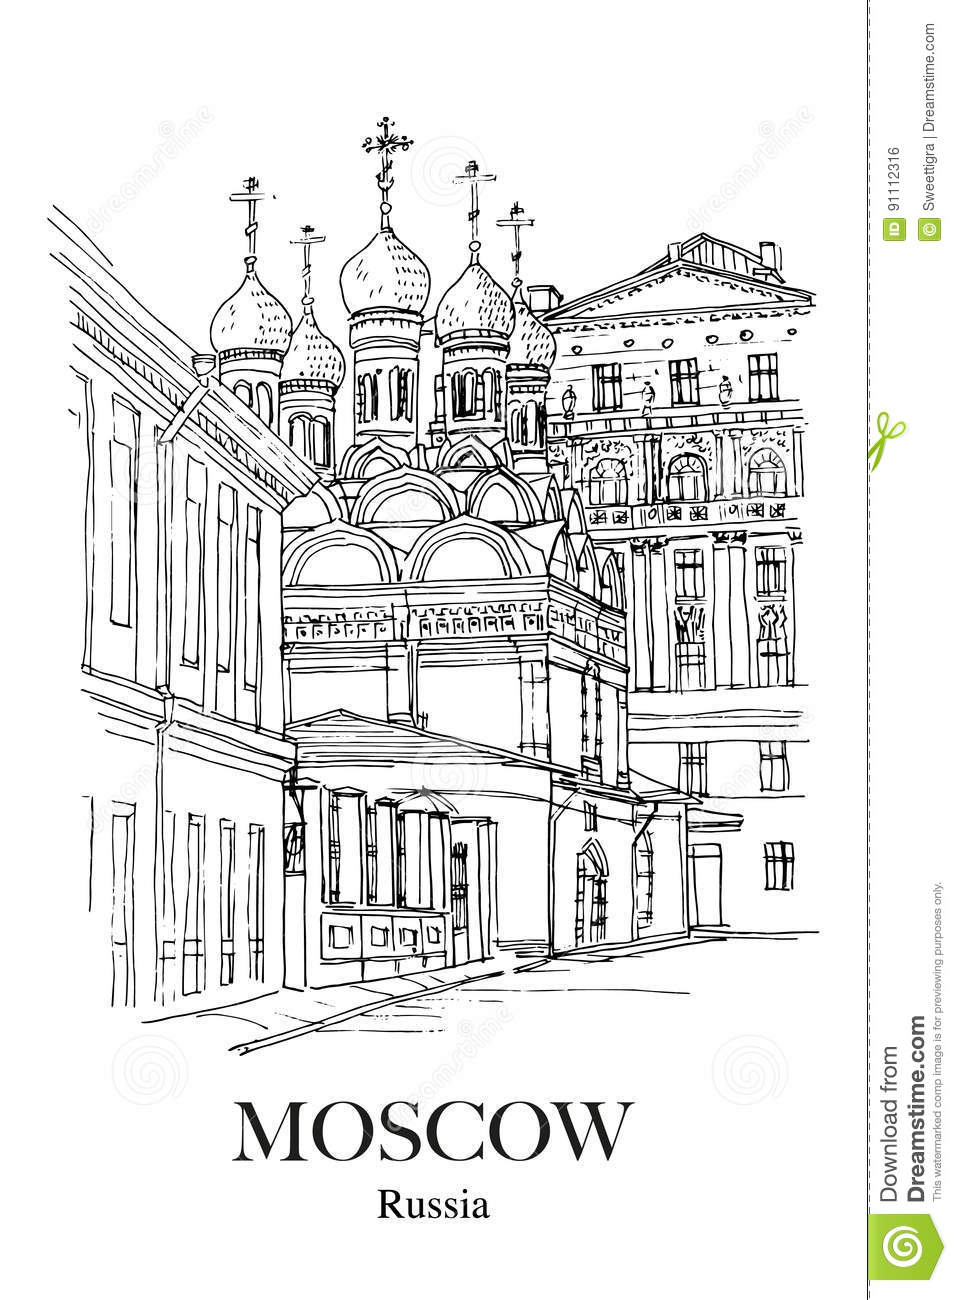 The poster of Chernigov and region: a selection of sites